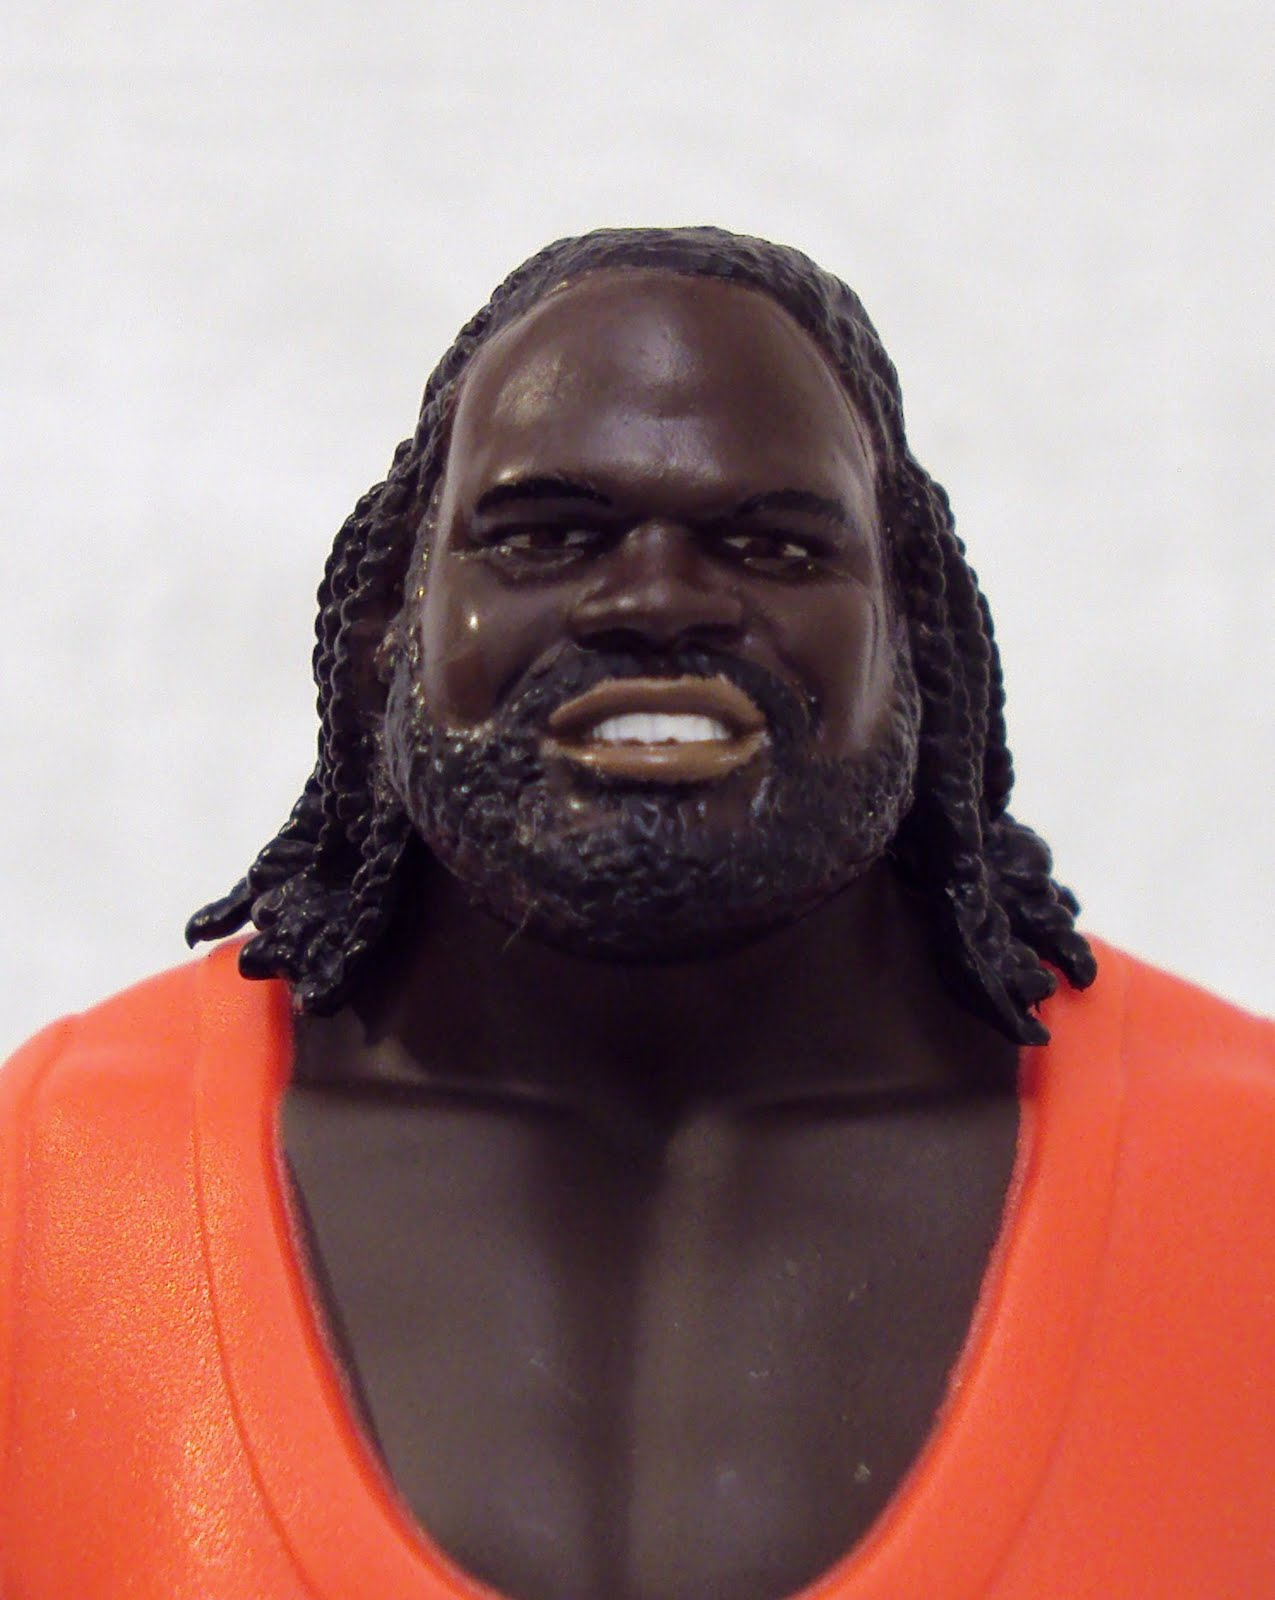 3B's Toy Hive: WWE Elite, Mark Henry - Review